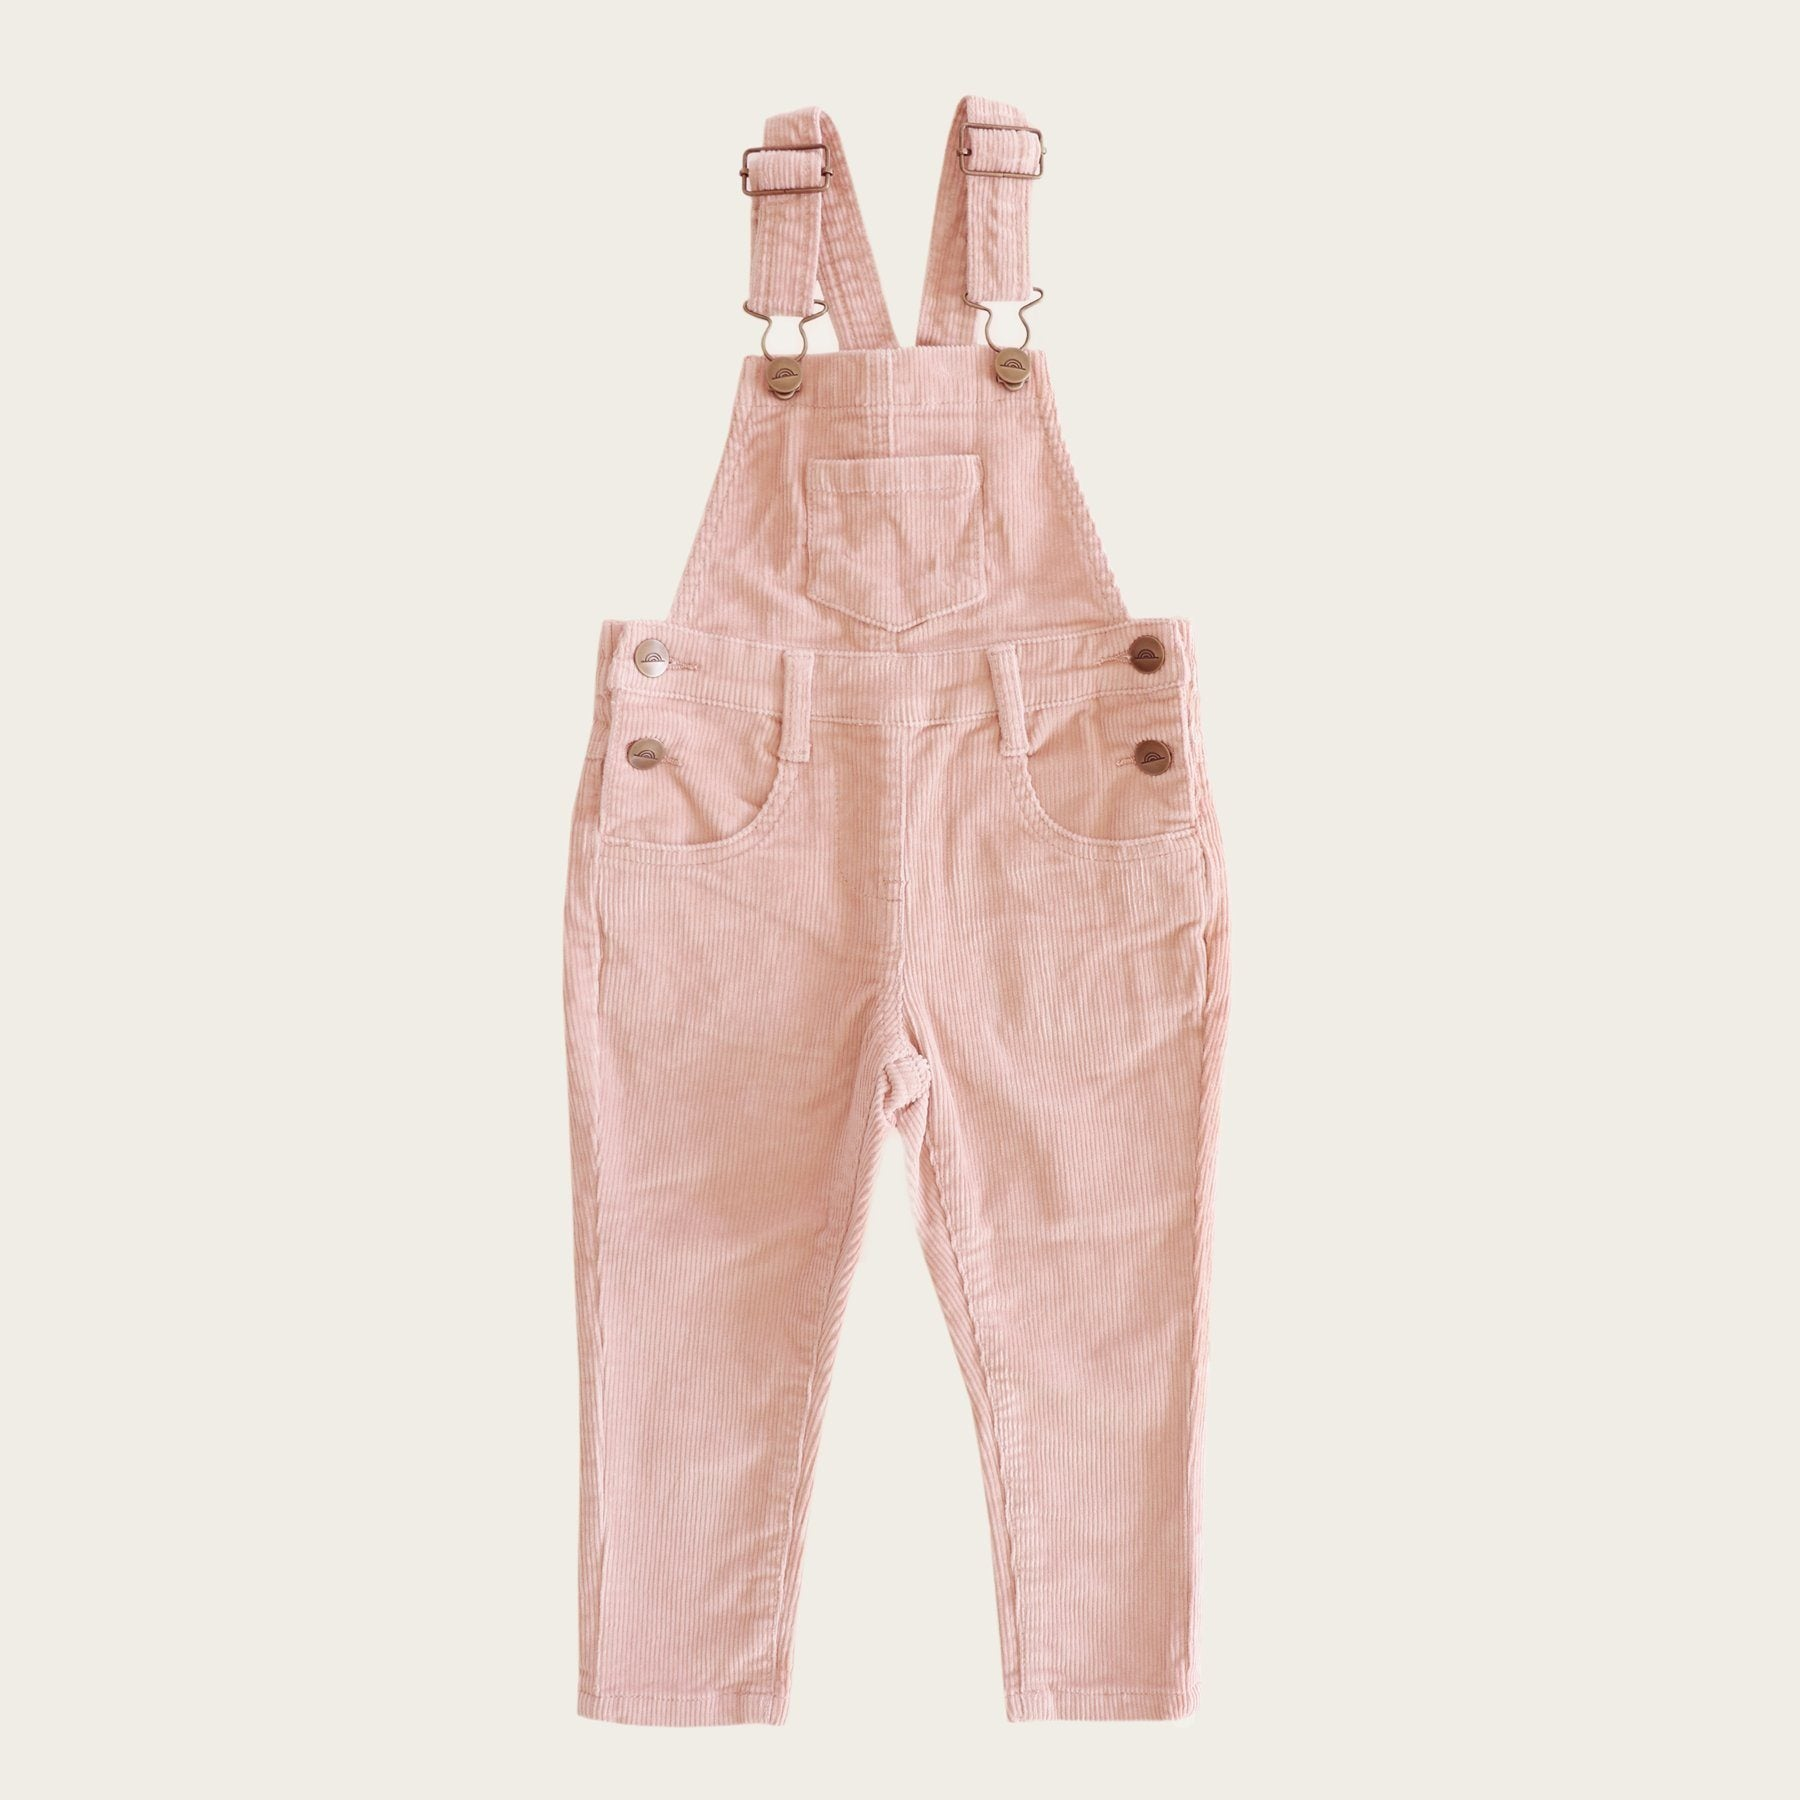 Jordie Cord Overall (Dainty)